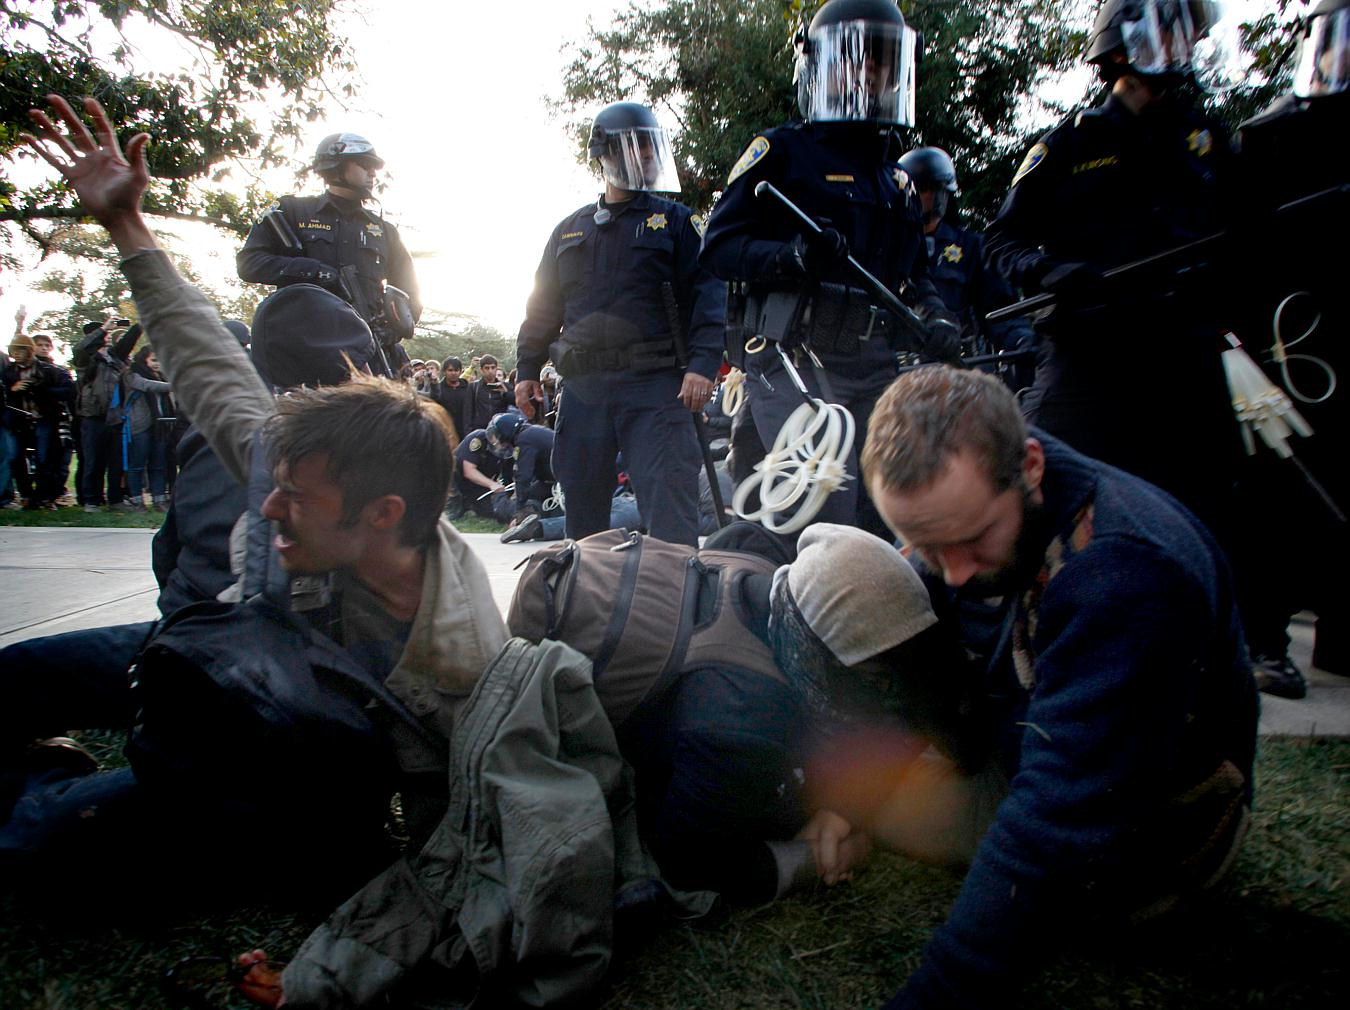 In this Friday, Nov. 18, 2011, photo Occupy University of California, Davis, protesters including David Buscho, far left, react after being pepper sprayed by police who came to remove tents set up on the school